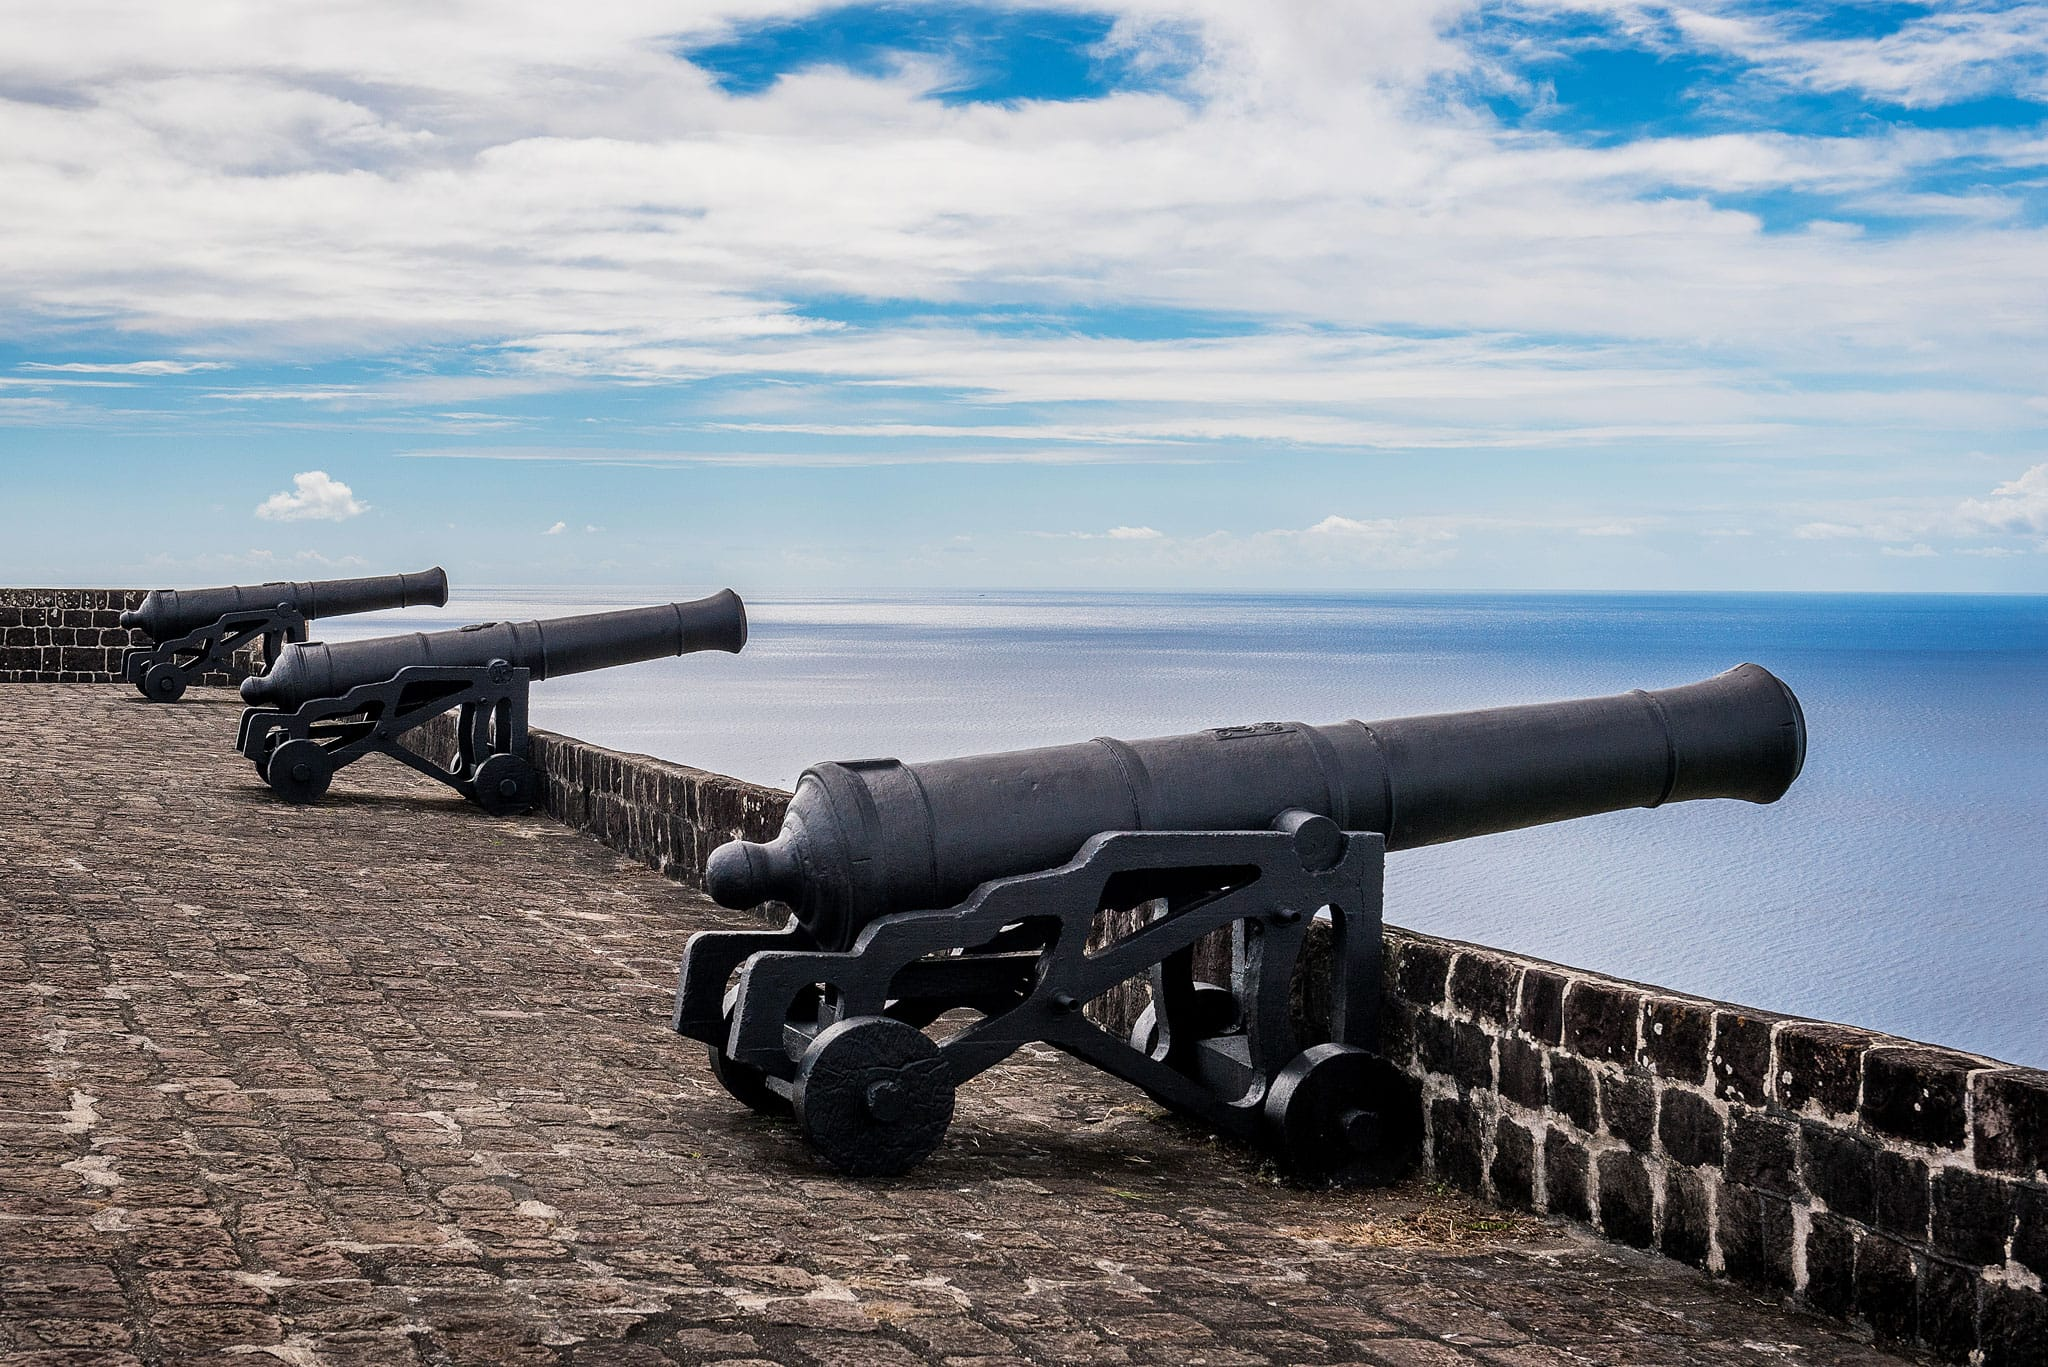 Brimstone Hill Fortress cannons by Patrick Bennett